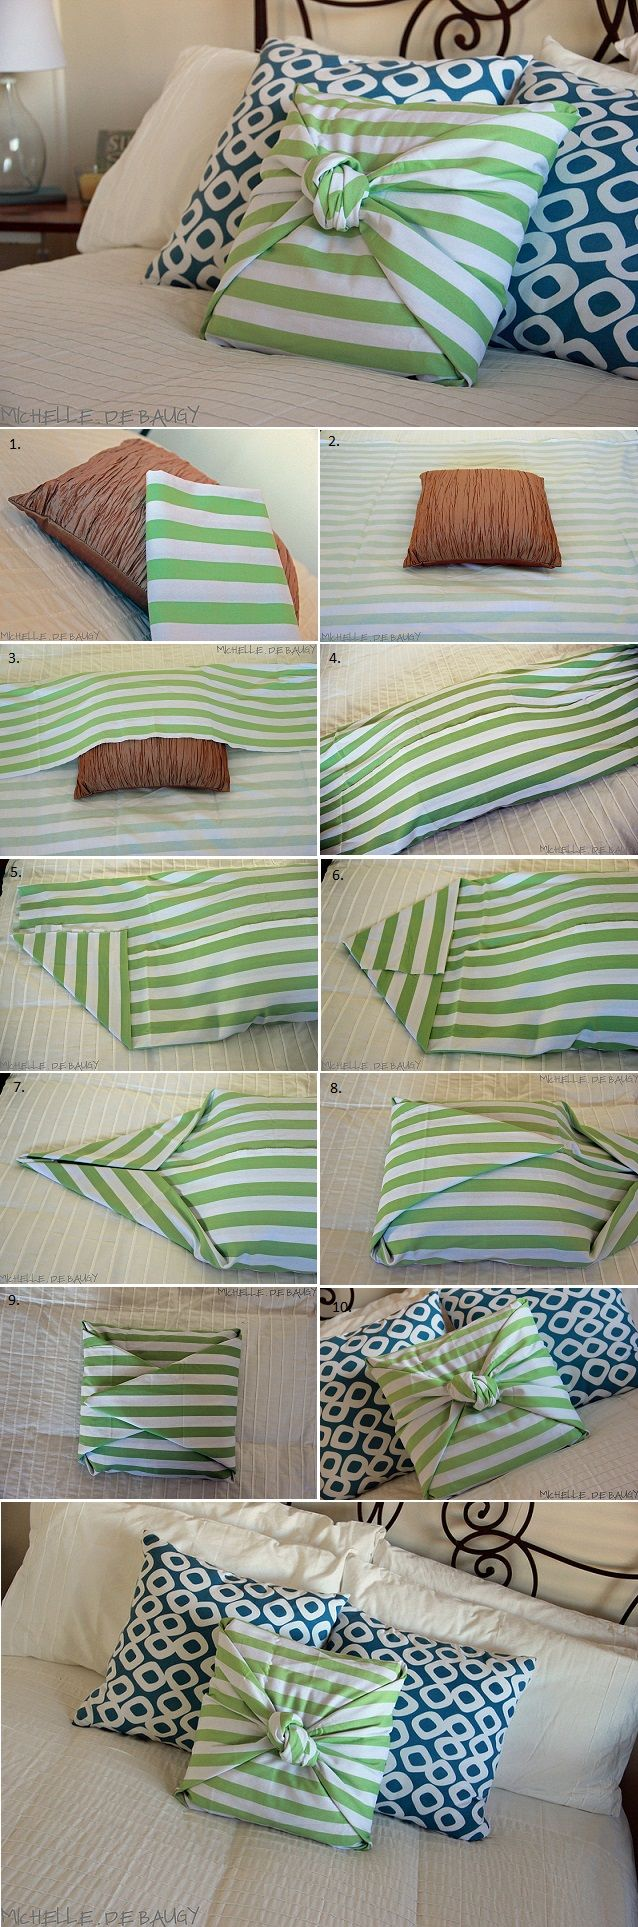 No Sew Pillow Case - DIY & 25+ unique No sew pillows ideas on Pinterest | No sew pillow ... pillowsntoast.com